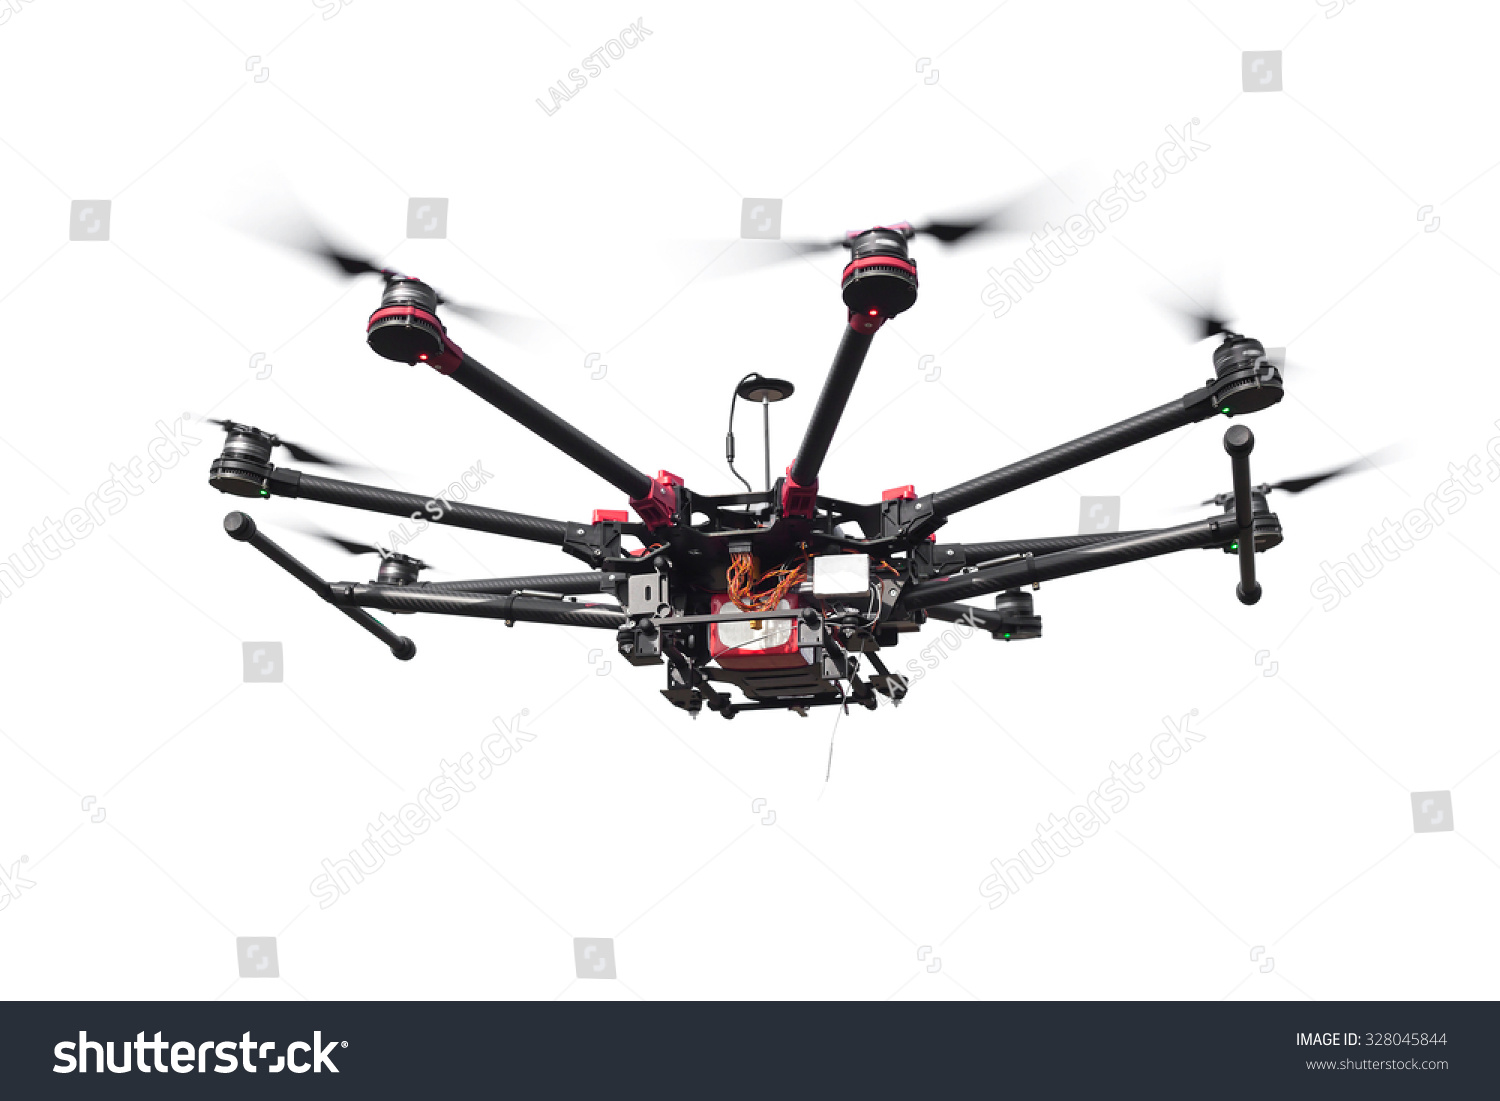 outdoor rc helicopter with camera with Copter Closeup Isolated On White Background 328045844 on Best Gaming Headset Under 30 further Copter Closeup Isolated On White Background 328045844 in addition Best Toys For 10 Year Old Boys In 2017 likewise P23 as well Remote Controlled Camera Helicopter.